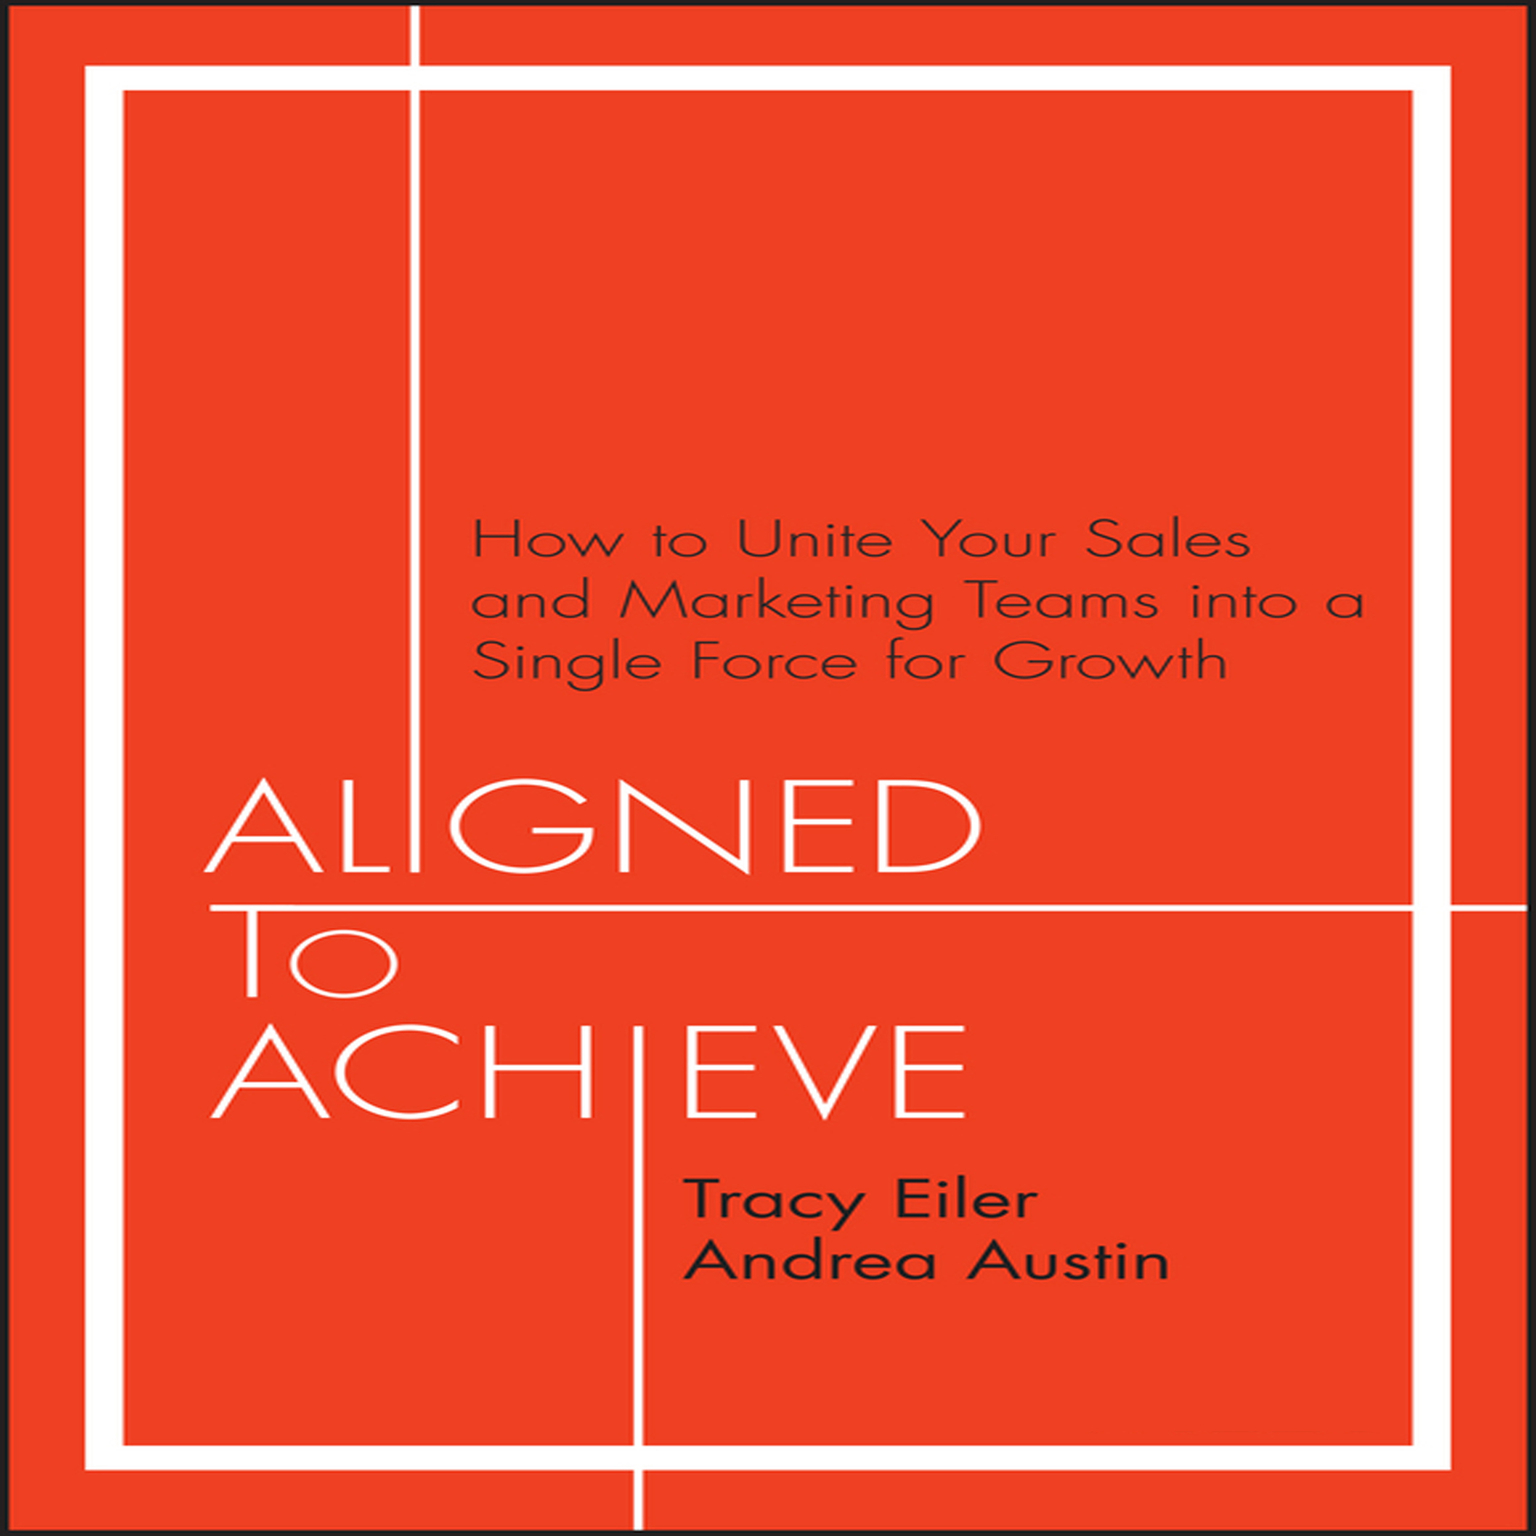 Aligned to Achieve: How to Unite Your Sales and Marketing Teams into a Single Force for Growth Audiobook, by Andrea Austin